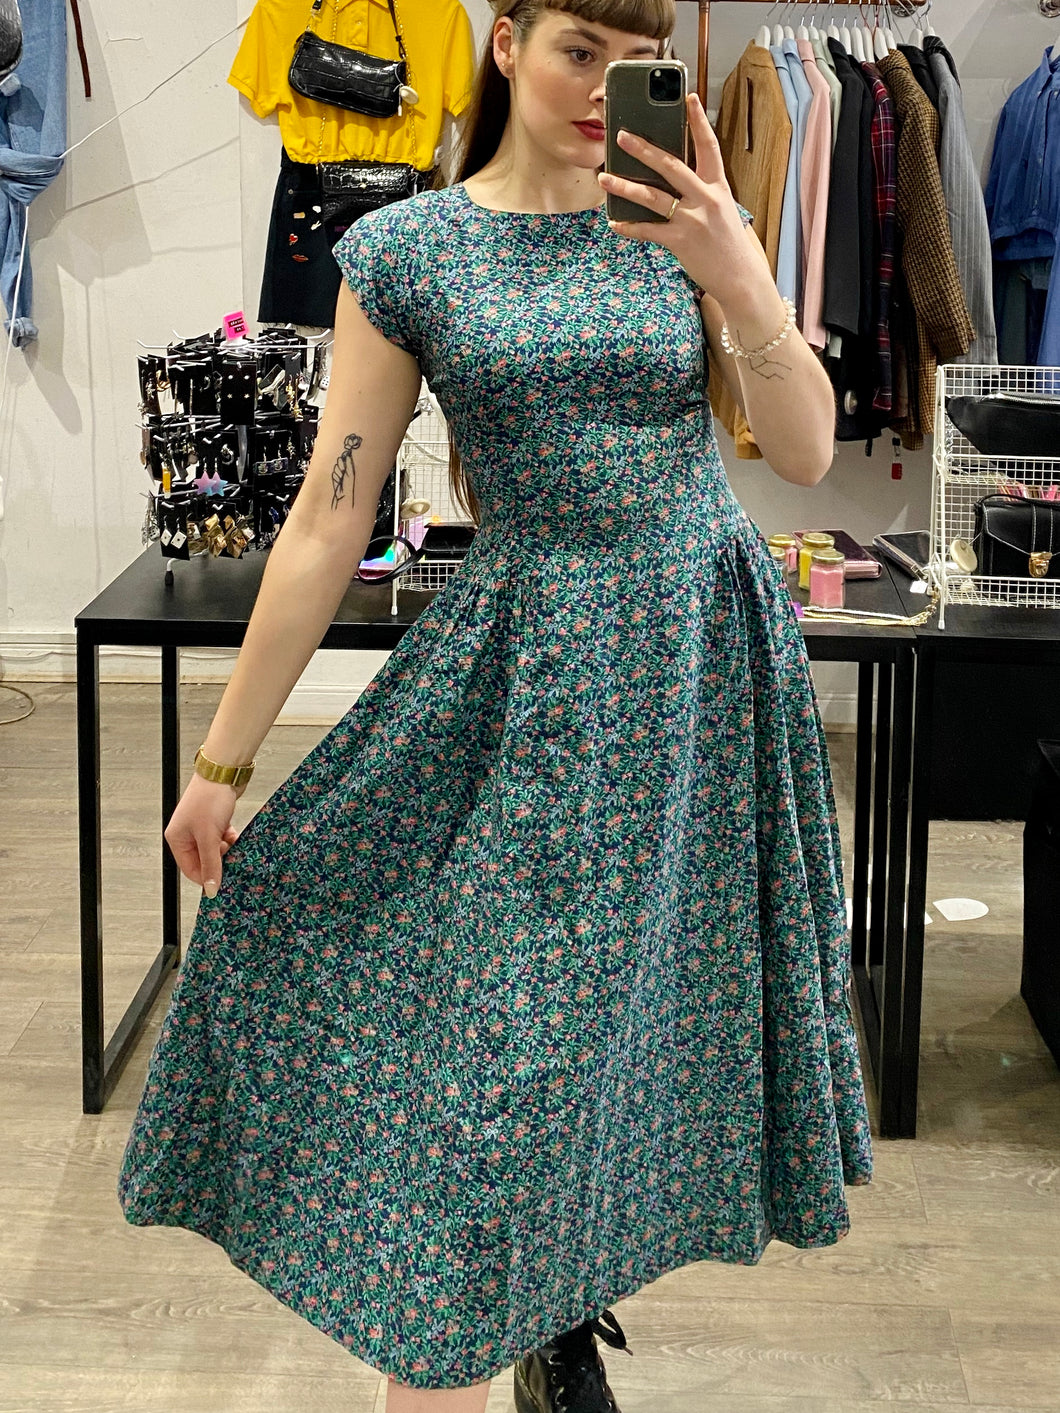 Vintage 70s Dress Floral Midi in Blue Green Pink Flower Pattern with Back Bow Details in S